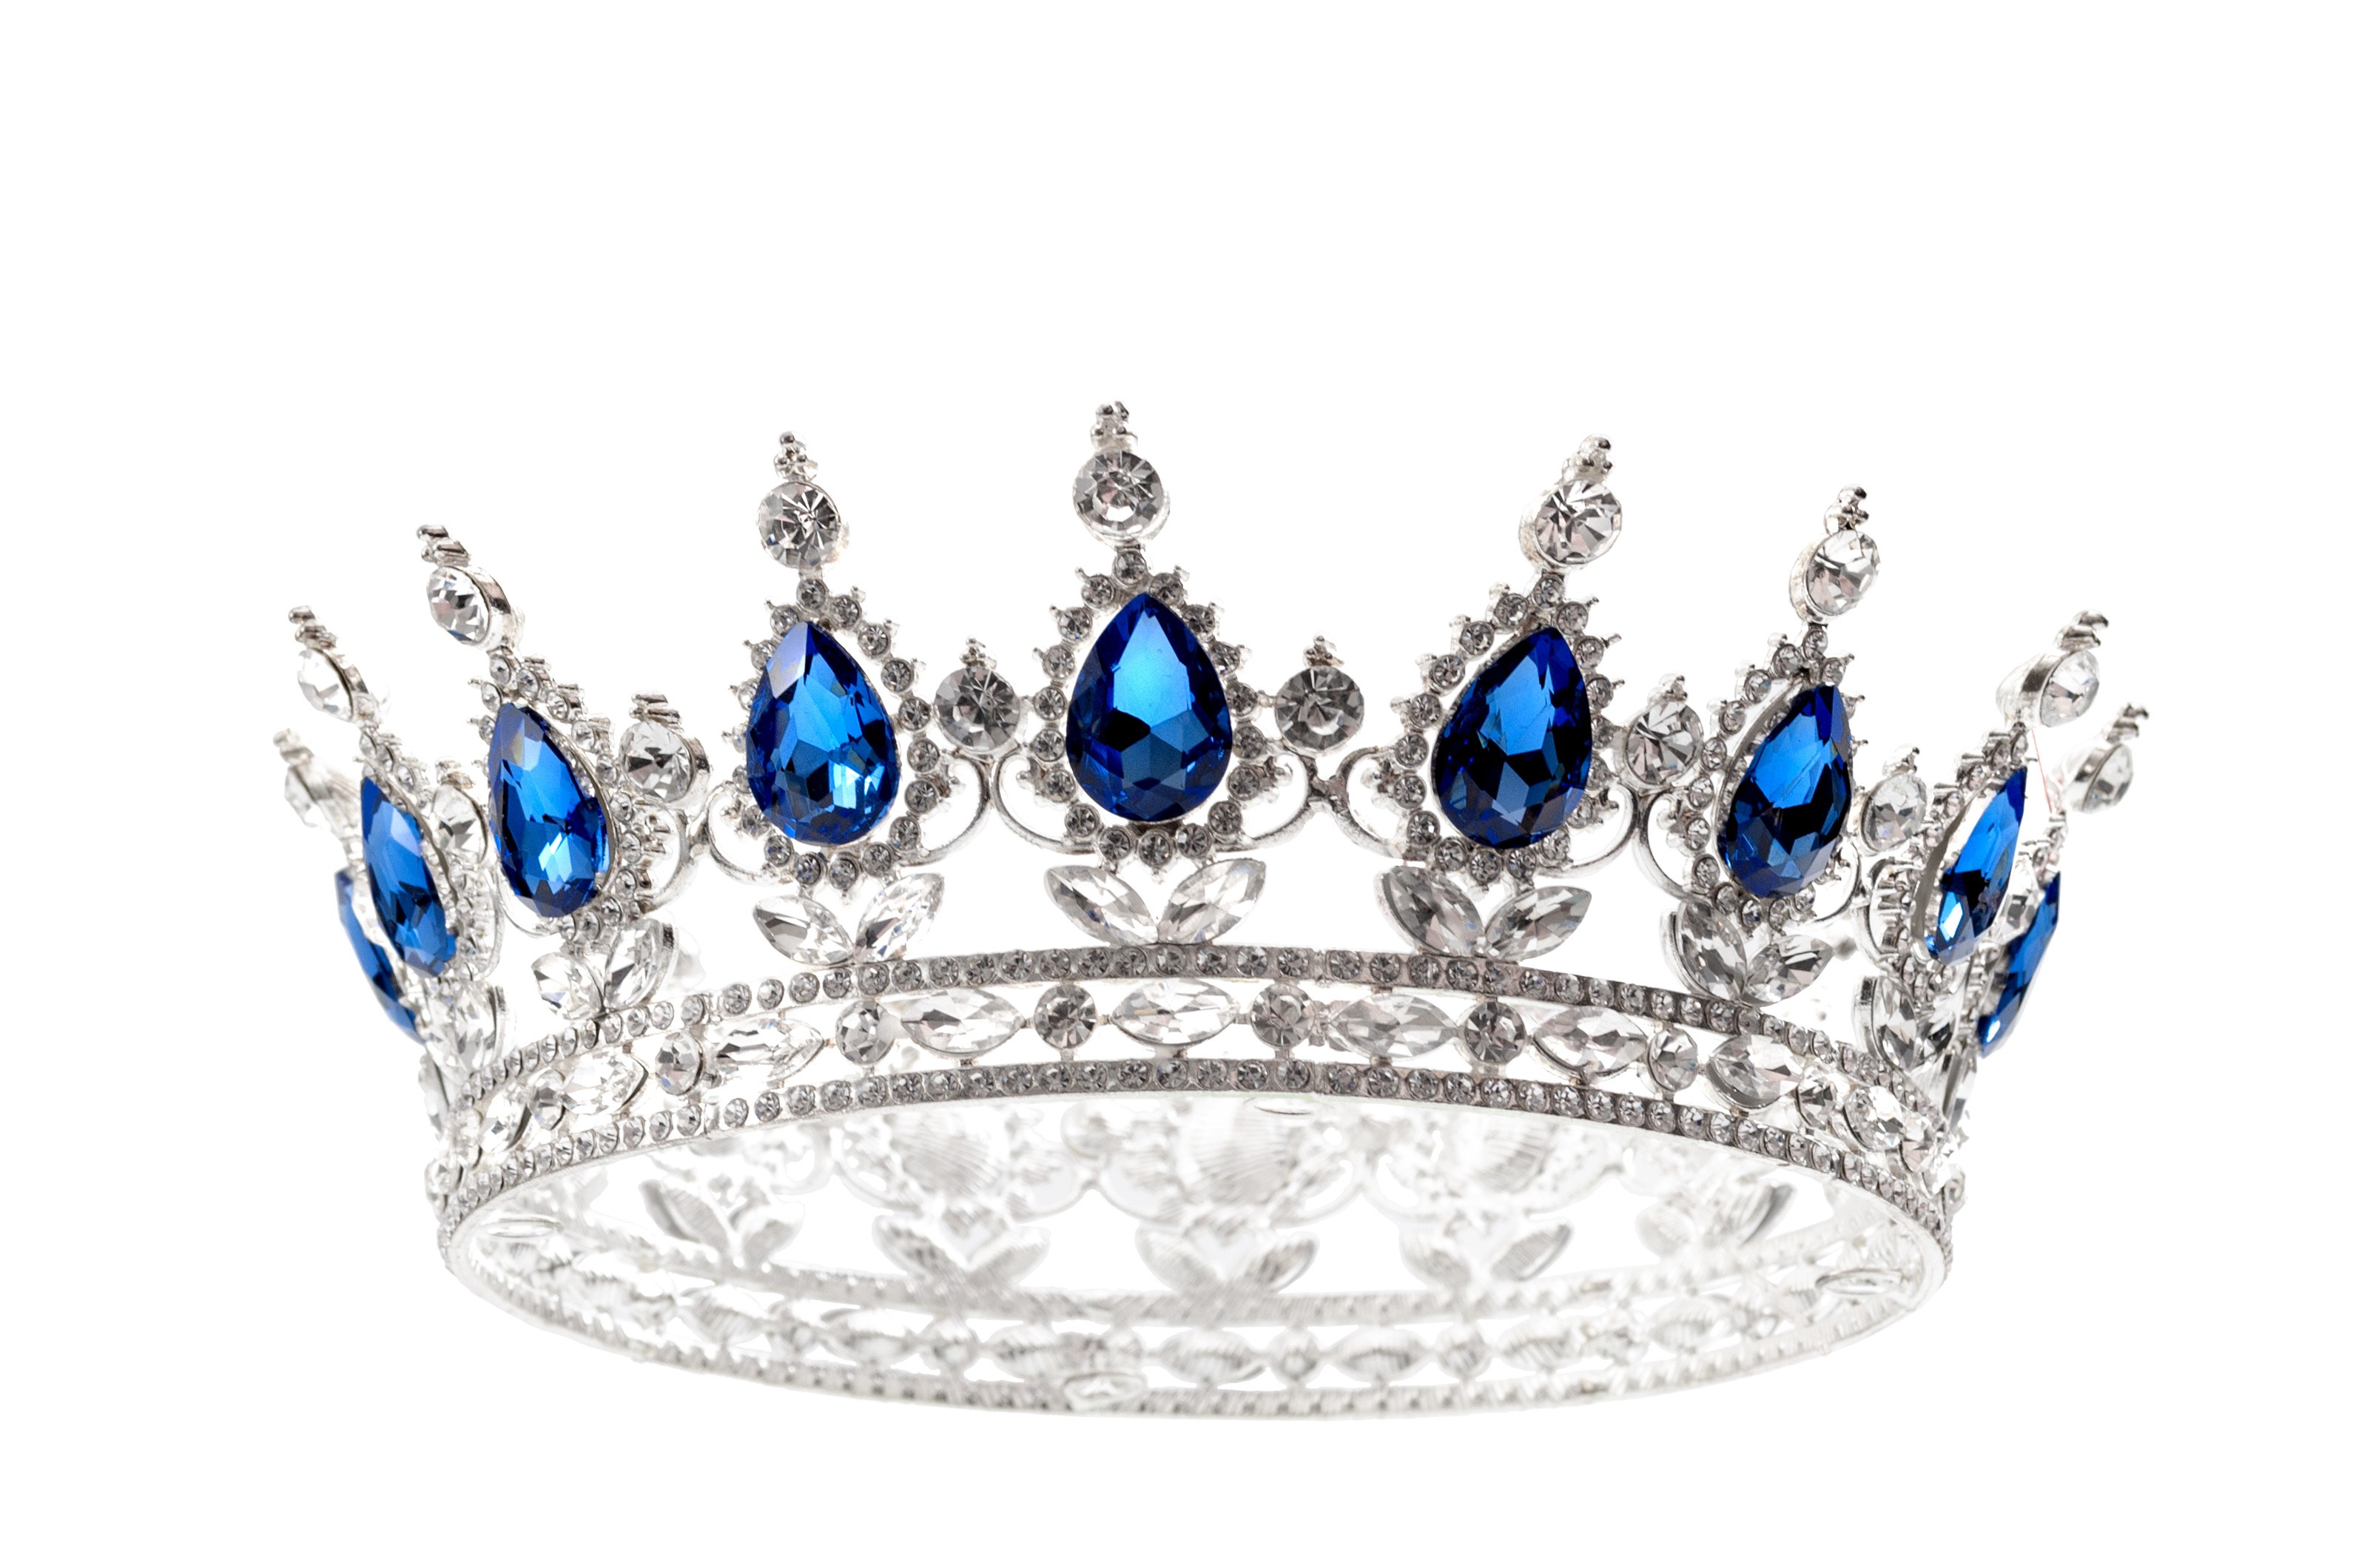 Wearing the crown. The permeating attention on the beauty… | by Rosennab |  Medium